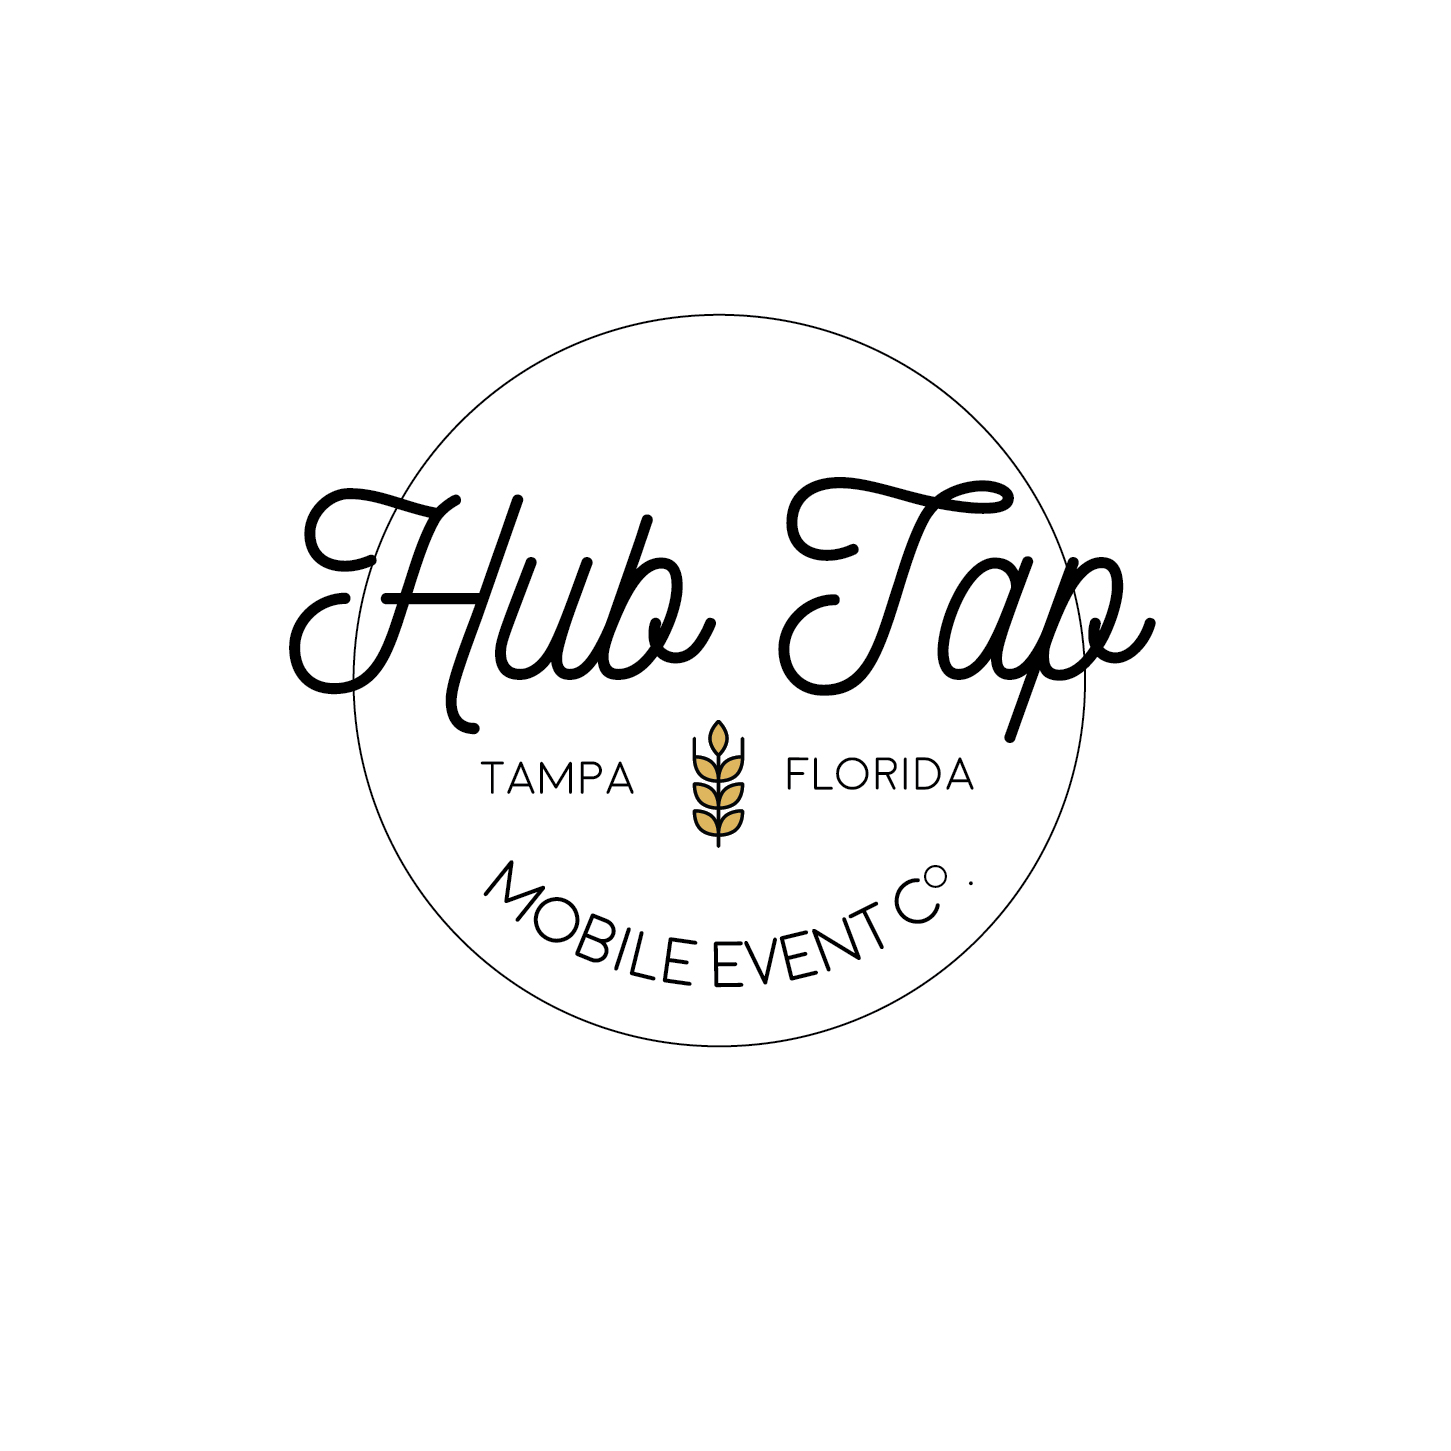 HUB TAP MOBILE EVENT CO.    TAMPA, FLORIDA